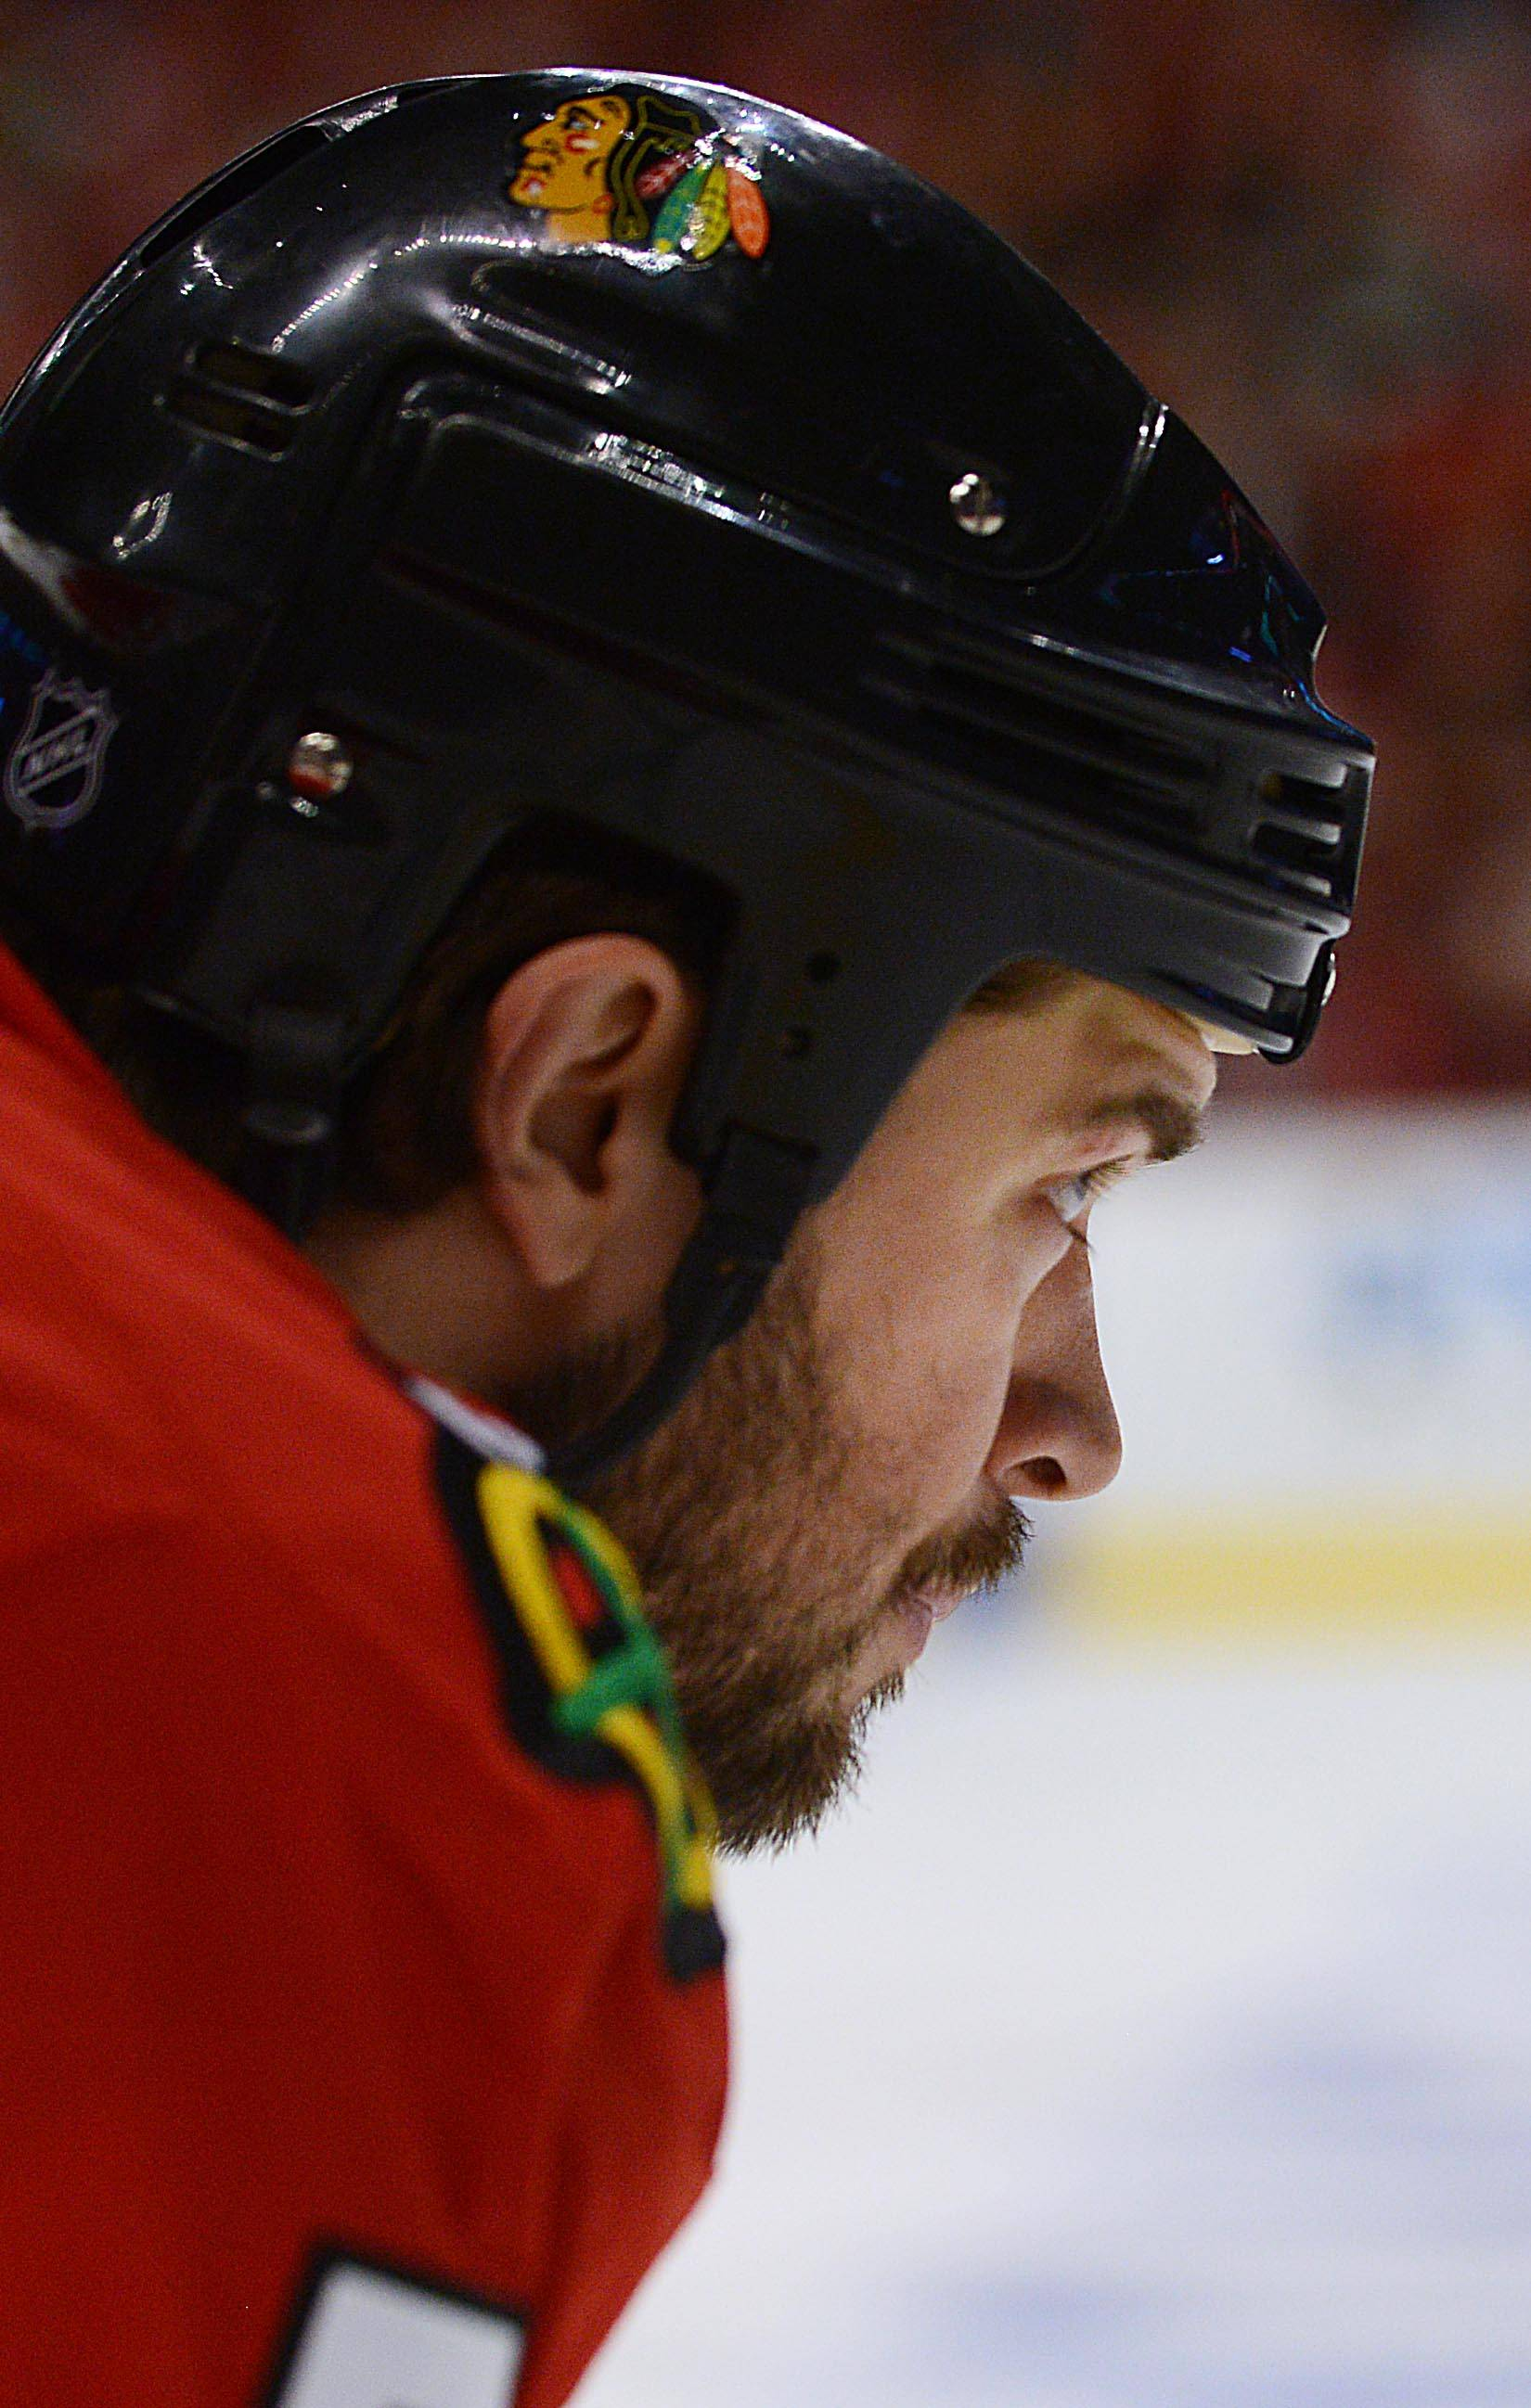 Chicago Blackhawks defenseman Brent Seabrook prepares for play during a faceoff against the Minnesota Wild.